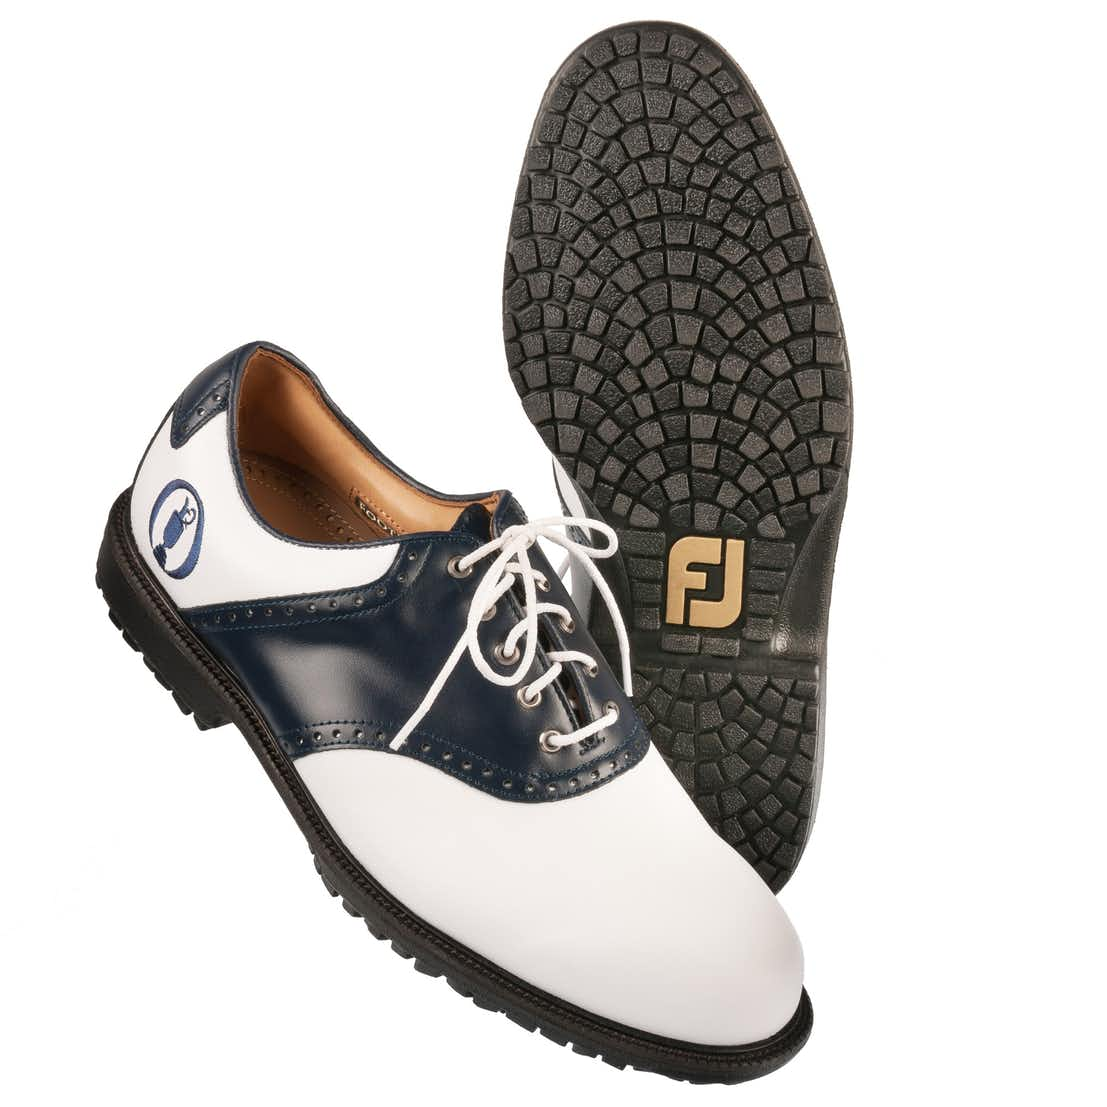 The Open FootJoy Golf Shoes - White